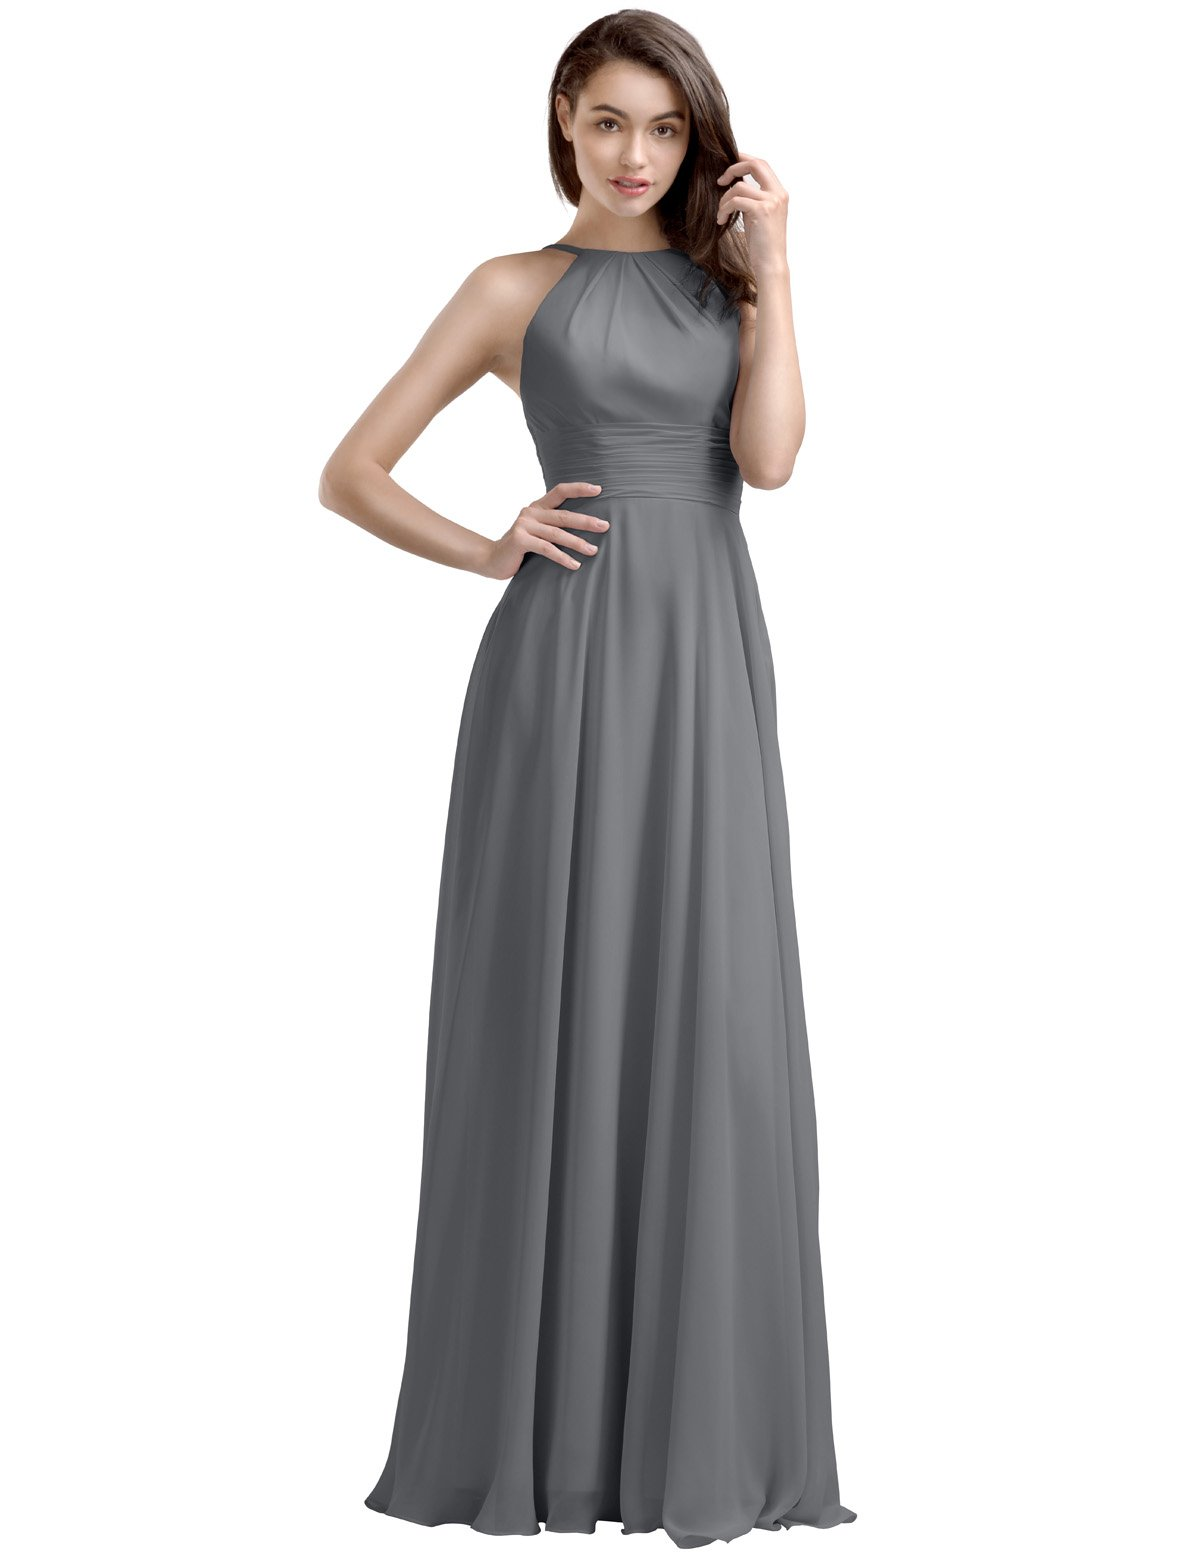 AWEI Bridal A-Line Long Bridesmaid Dress Chiffon Prom Dress with Round Neck, Steel Gray, US4